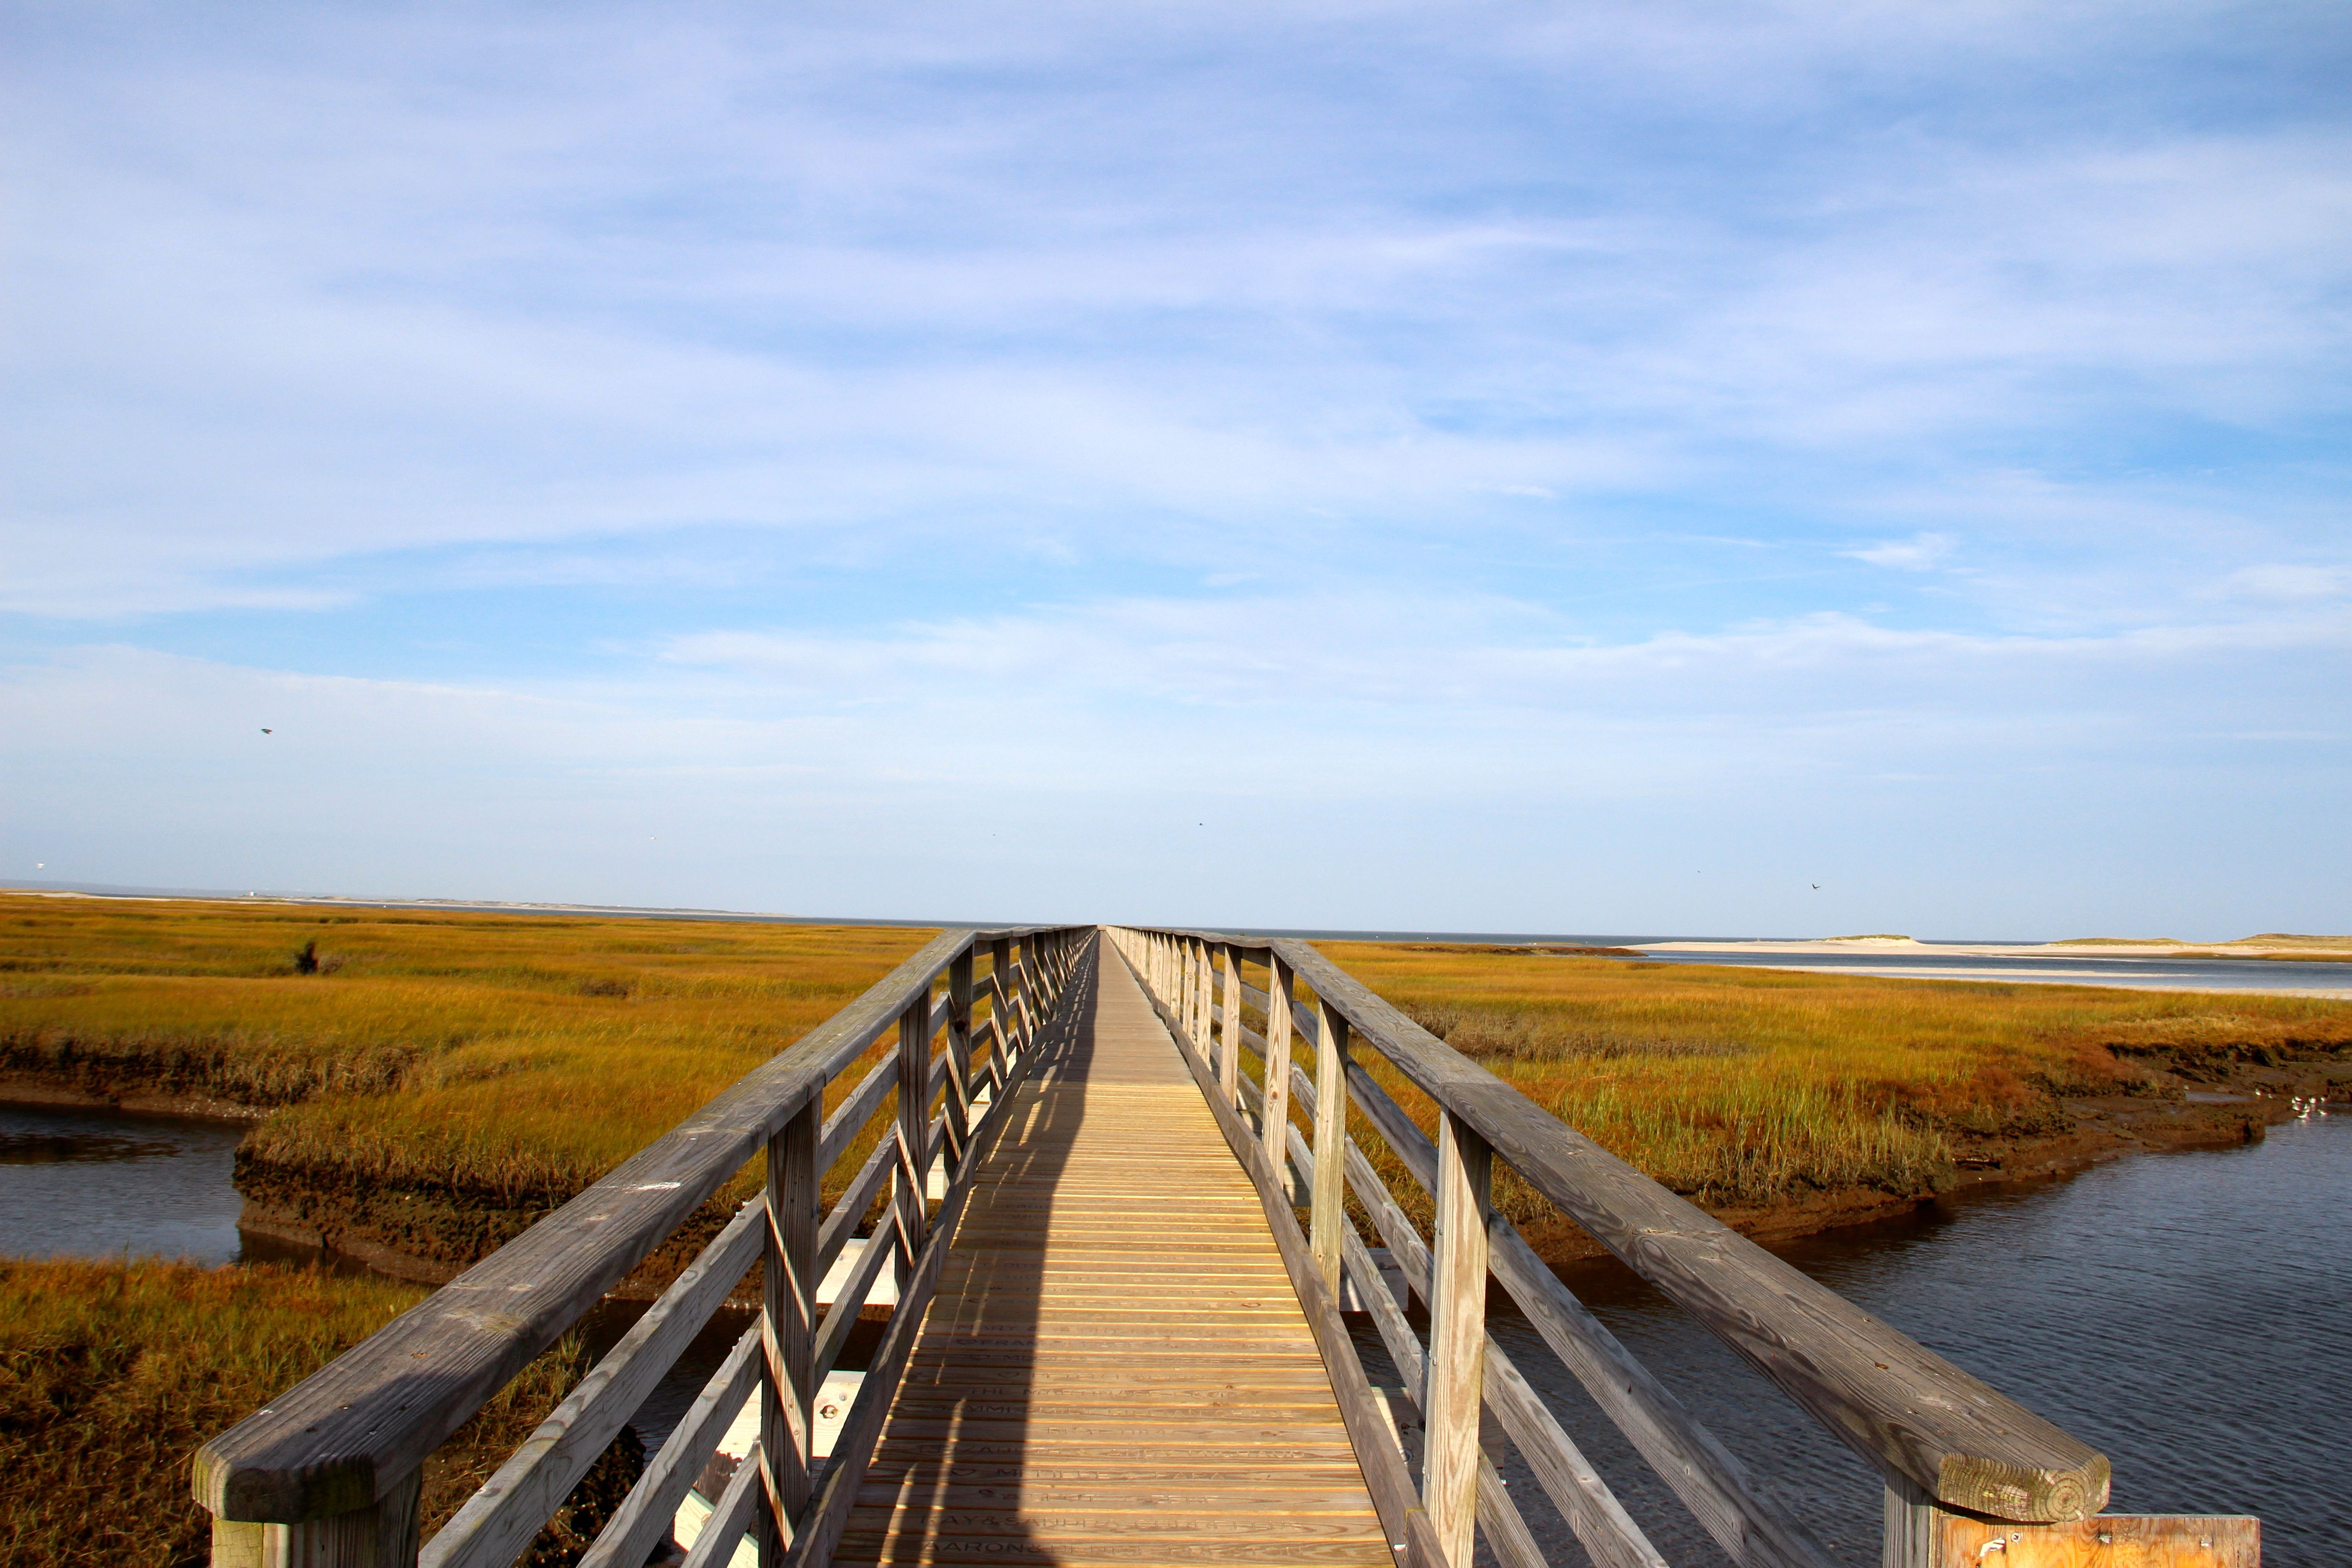 Bass Hole Boardwalk At Grays Beach In Yarmouth, Ma On